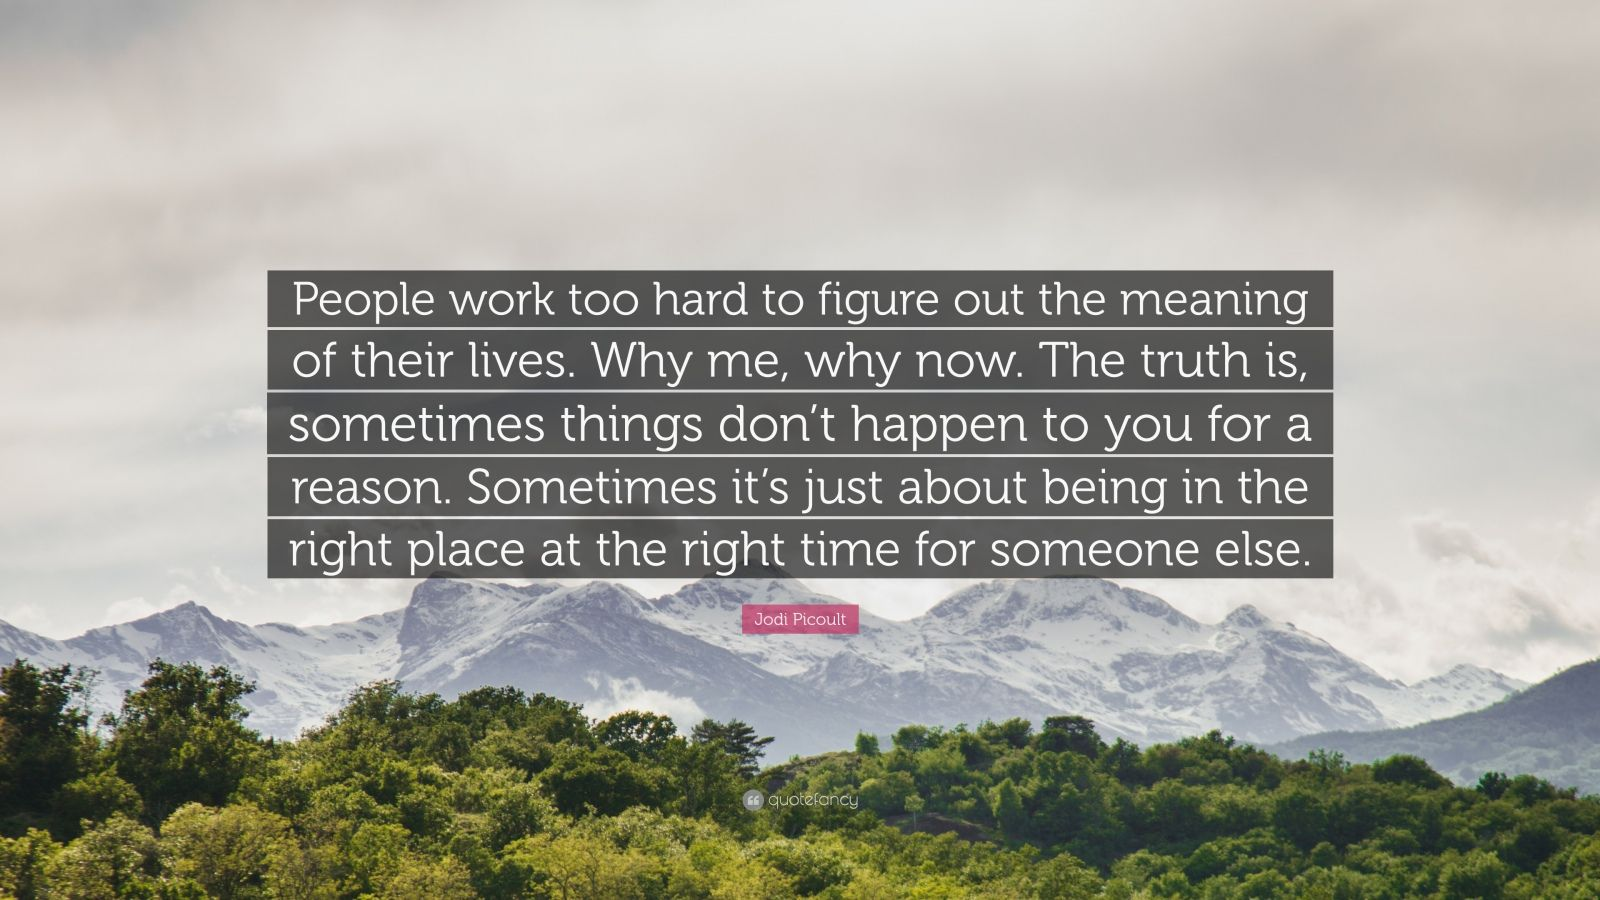 """Jodi Picoult Quote: """"People work too hard to figure out the meaning of their lives. Why me, why now. The truth is, sometimes things don't happen to you for a reason. Sometimes it's just about being in the right place at the right time for someone else."""""""